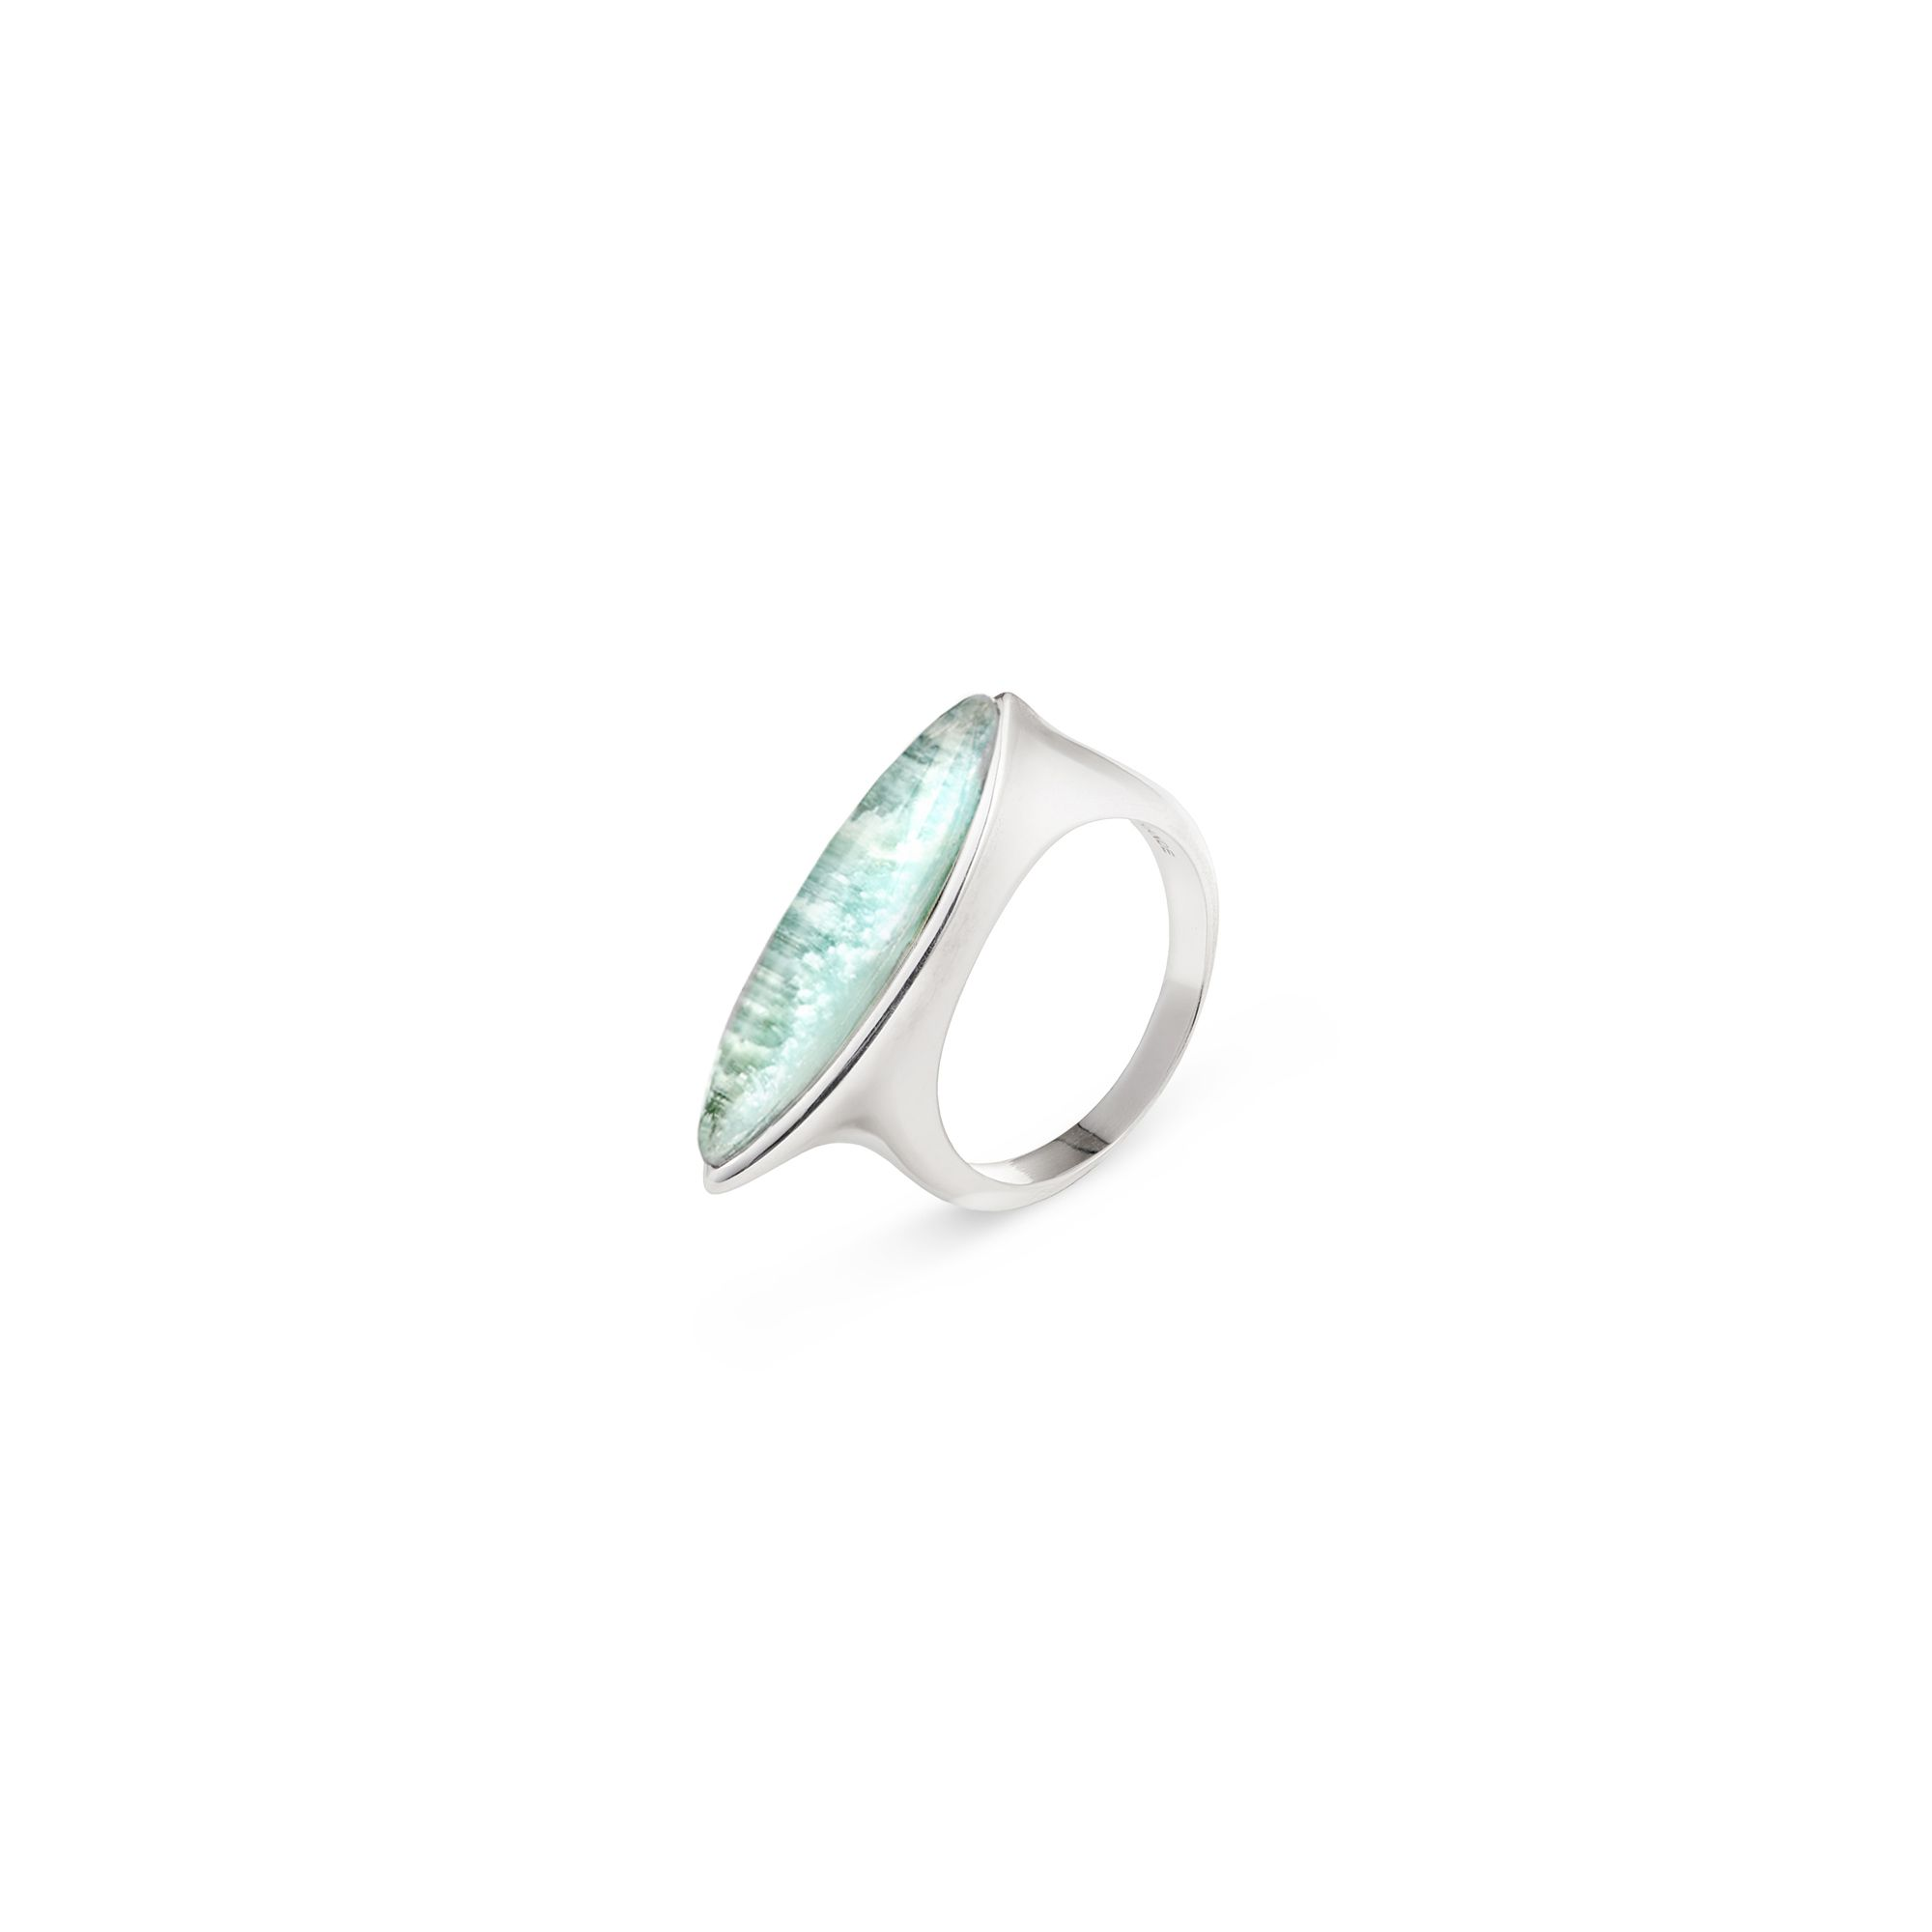 'Navetta' ring with amazonite Silver ring with 'doublet' stone